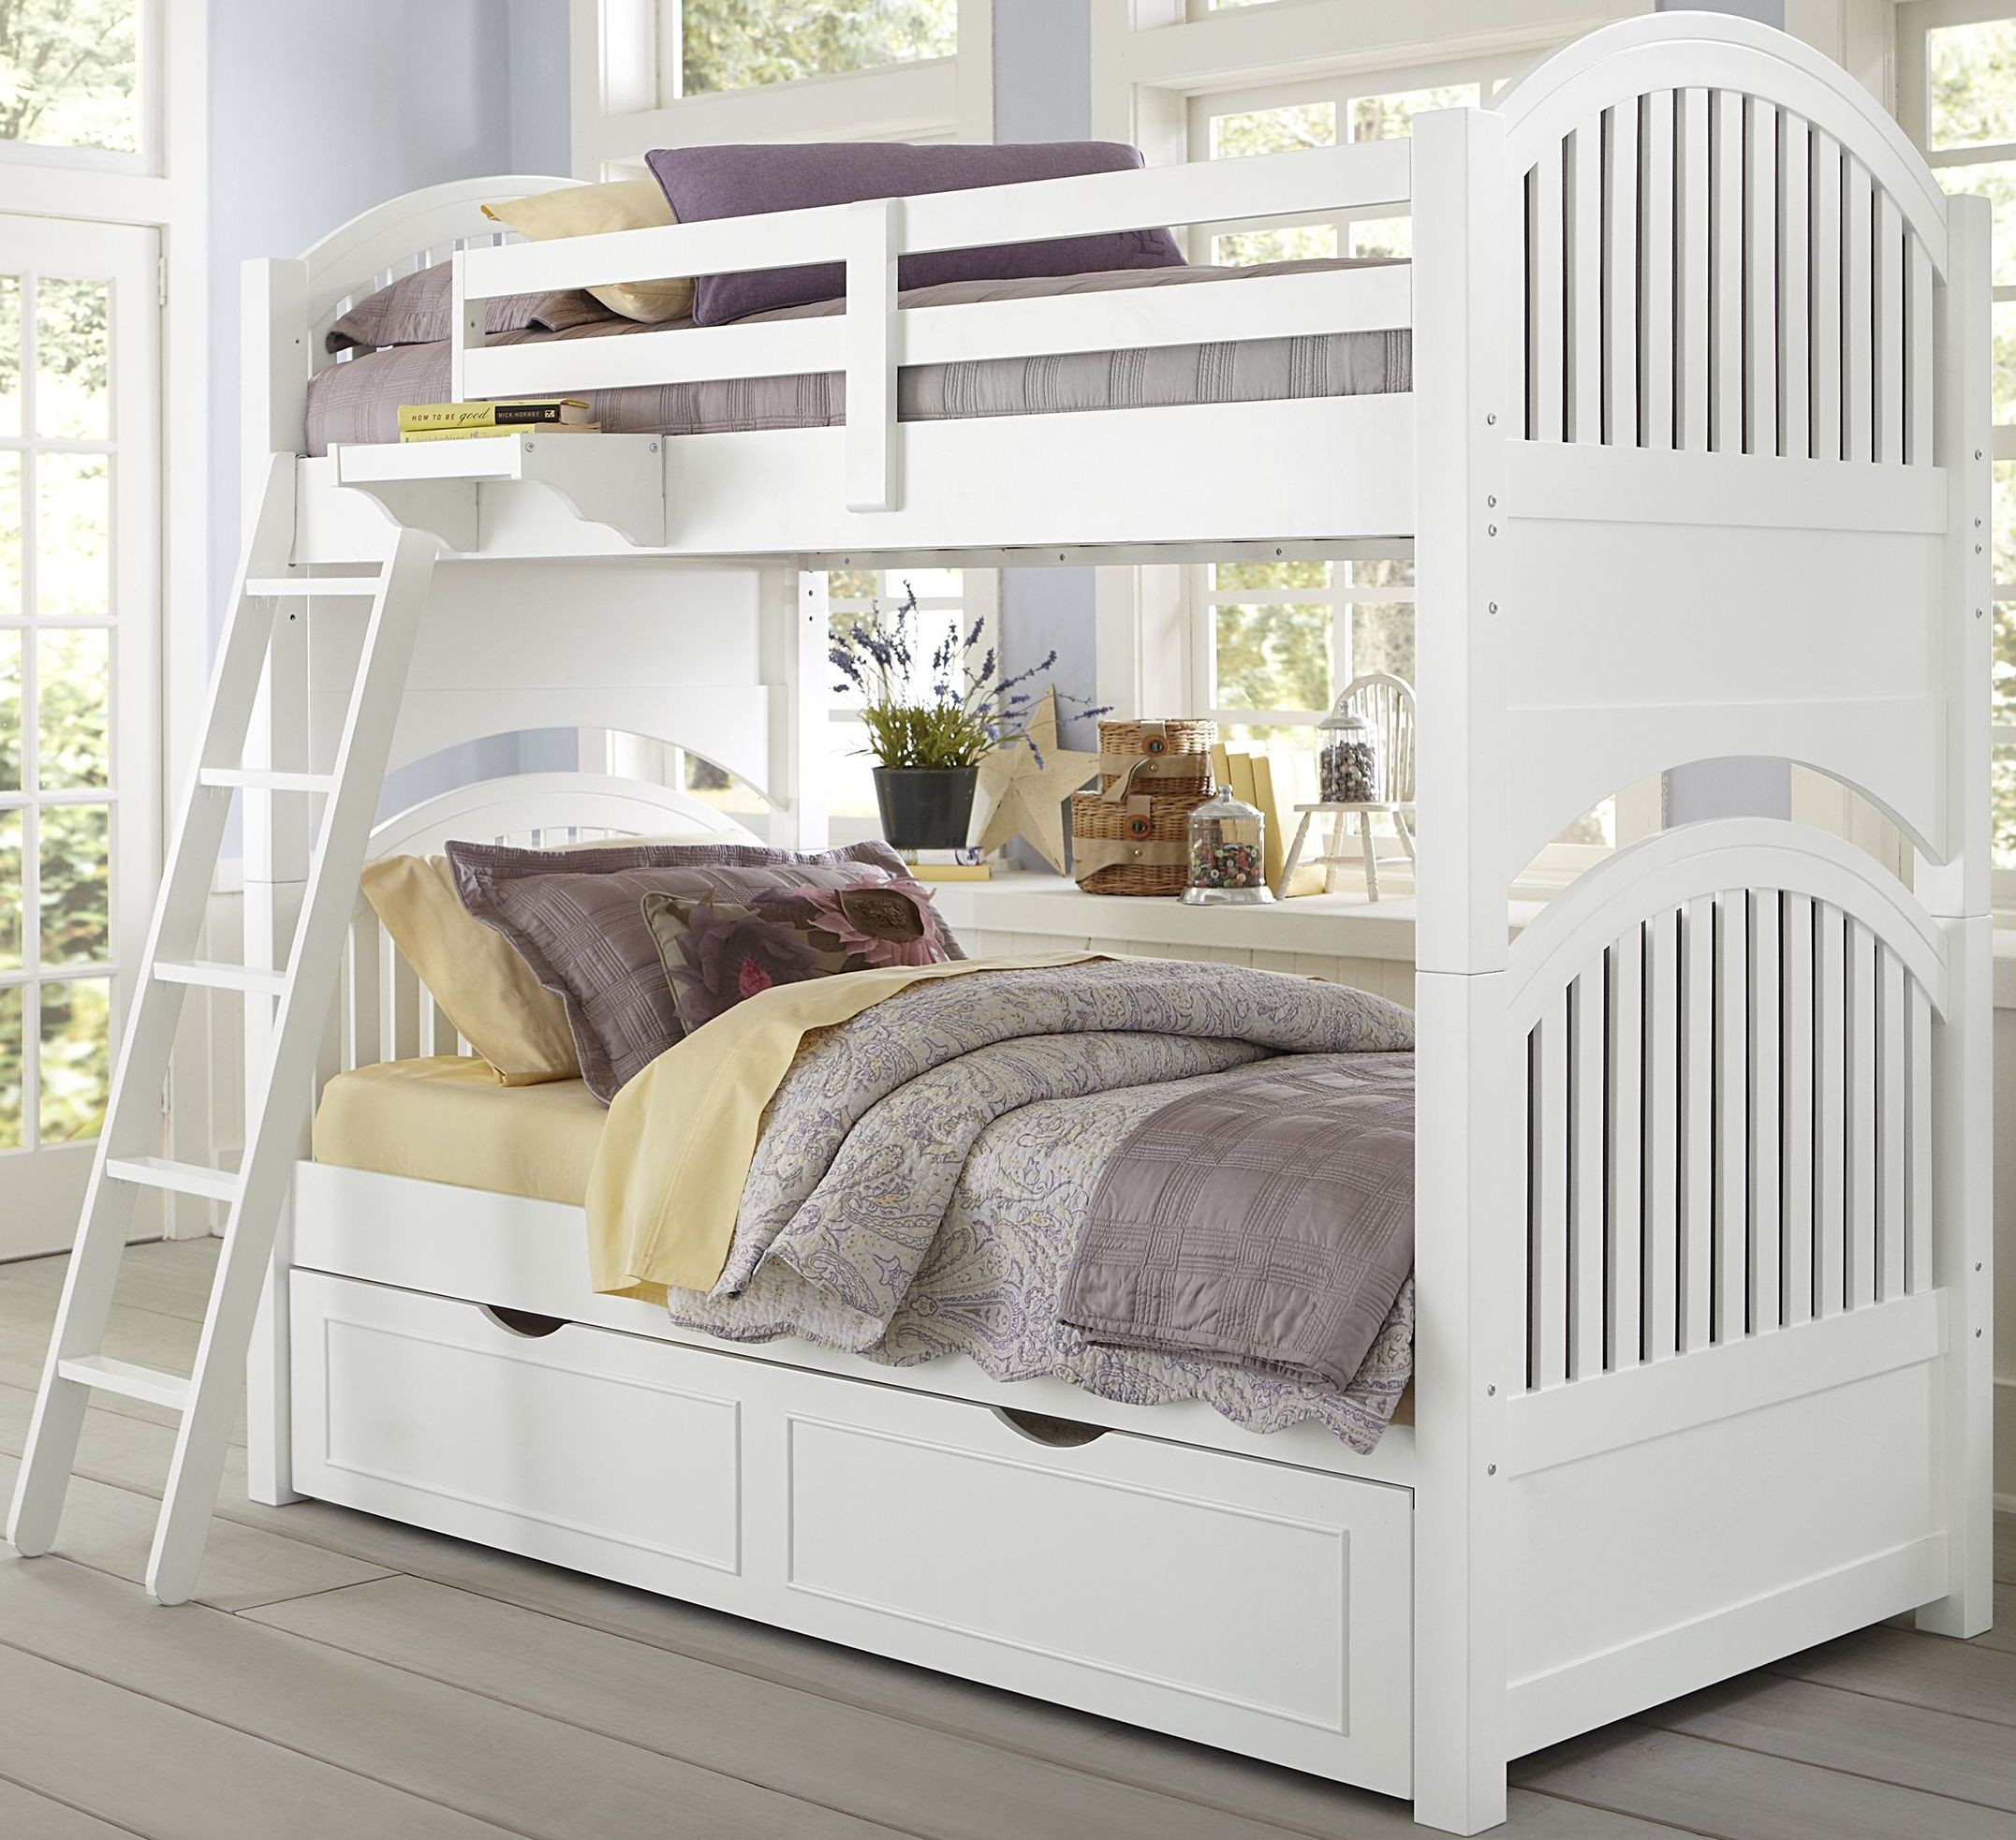 Lake house white adrain twin over twin bunk bed with trundle from ne kids coleman furniture White twin trundle bedroom set